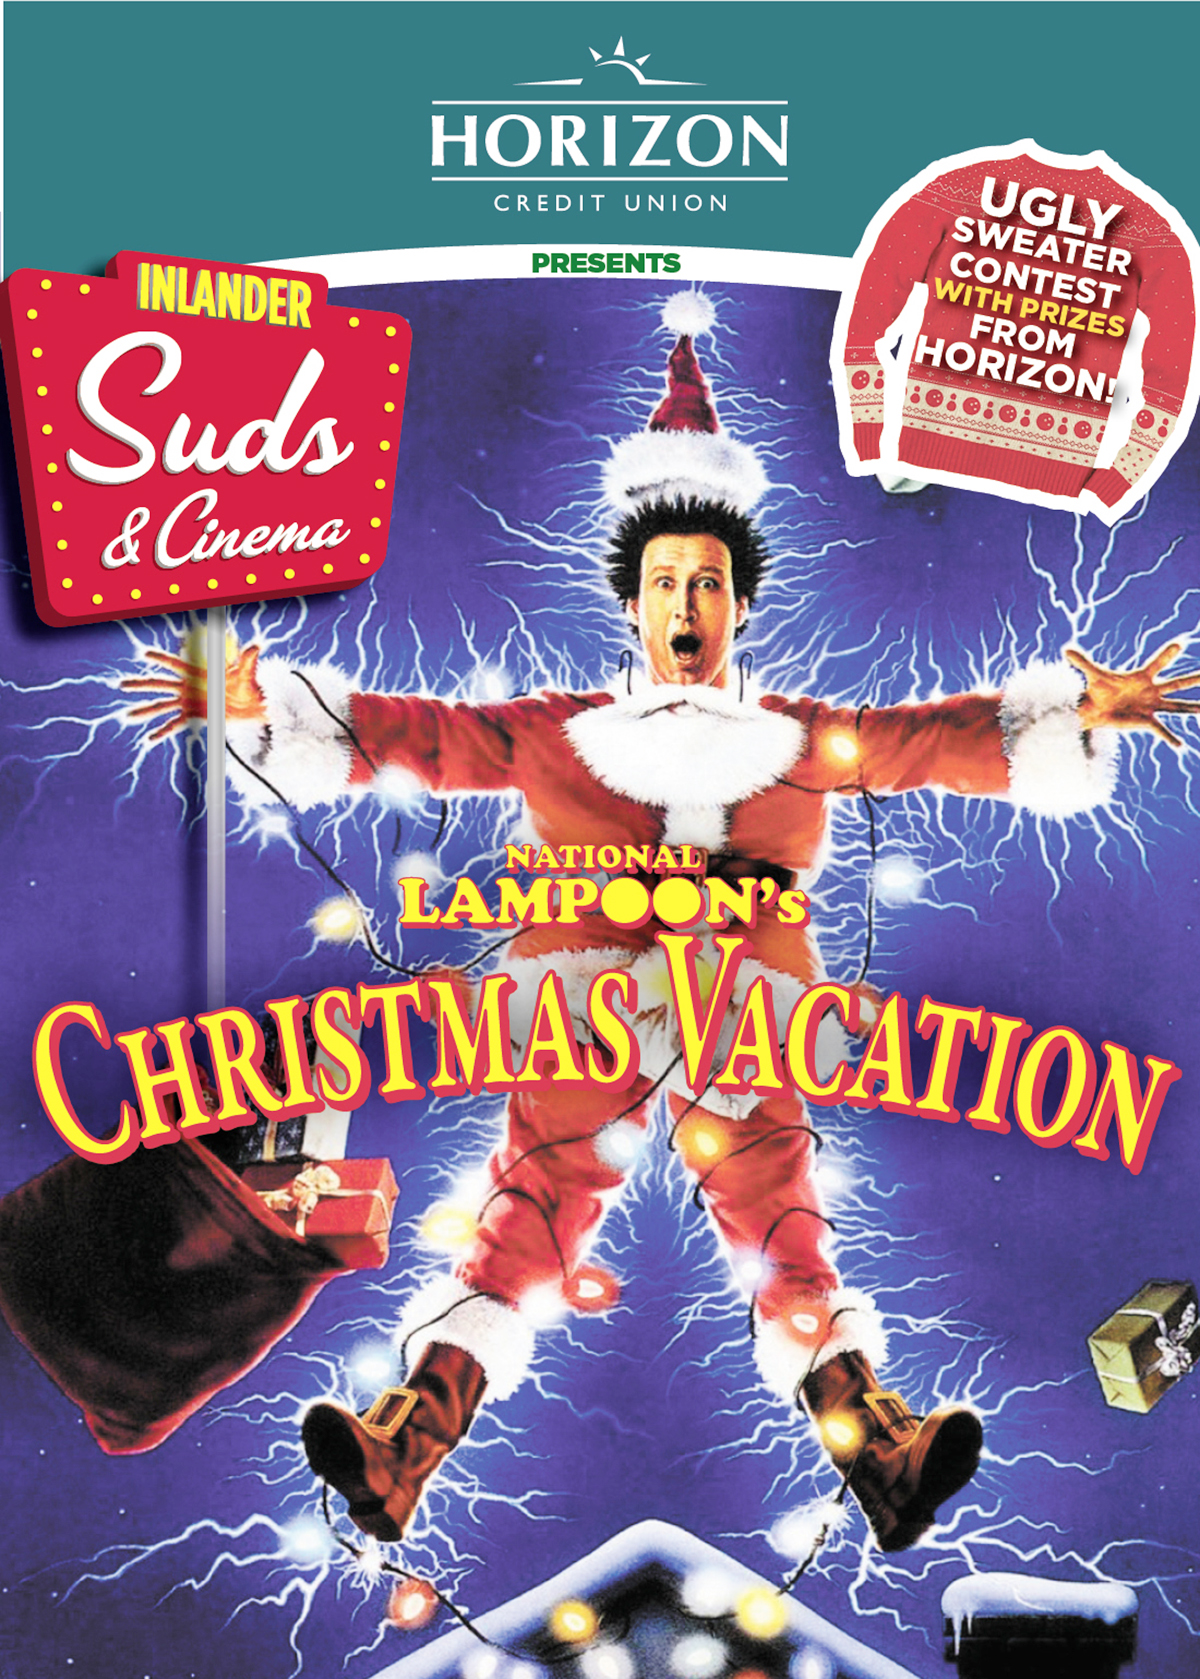 national lampoons christmas vacation rated pg 13 thursday december 22nd garland theater 924 west garland ave - National Lampoon Christmas Vacation